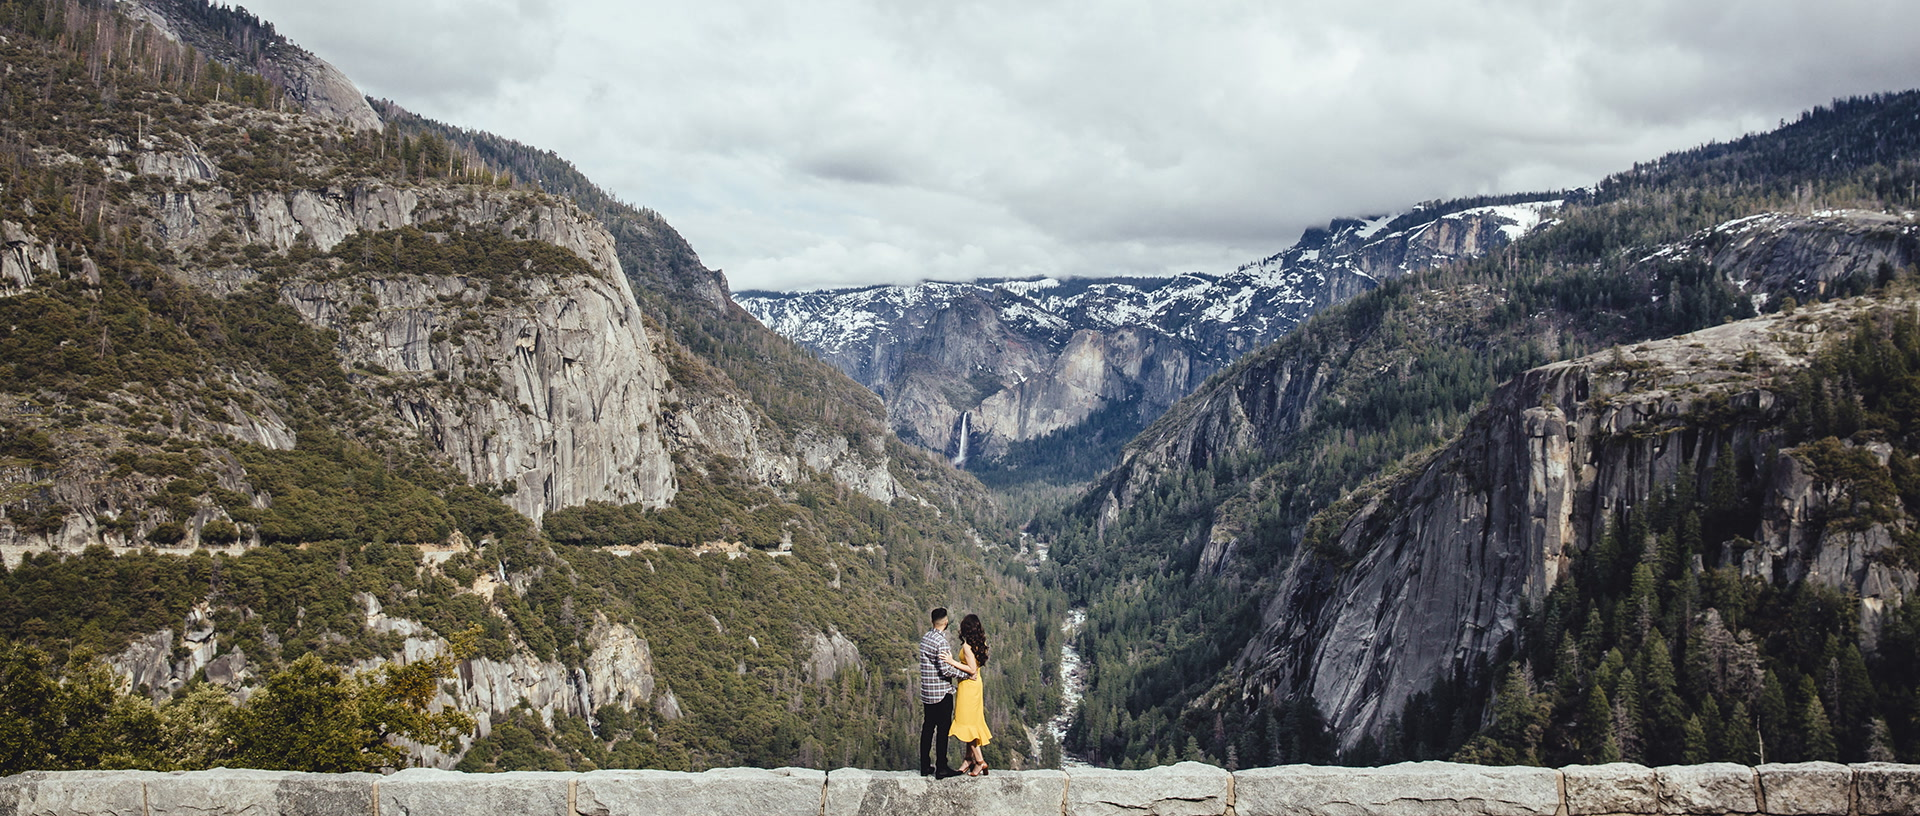 Amit + Veena | Yosemite Valley, California | Yosemite National Park